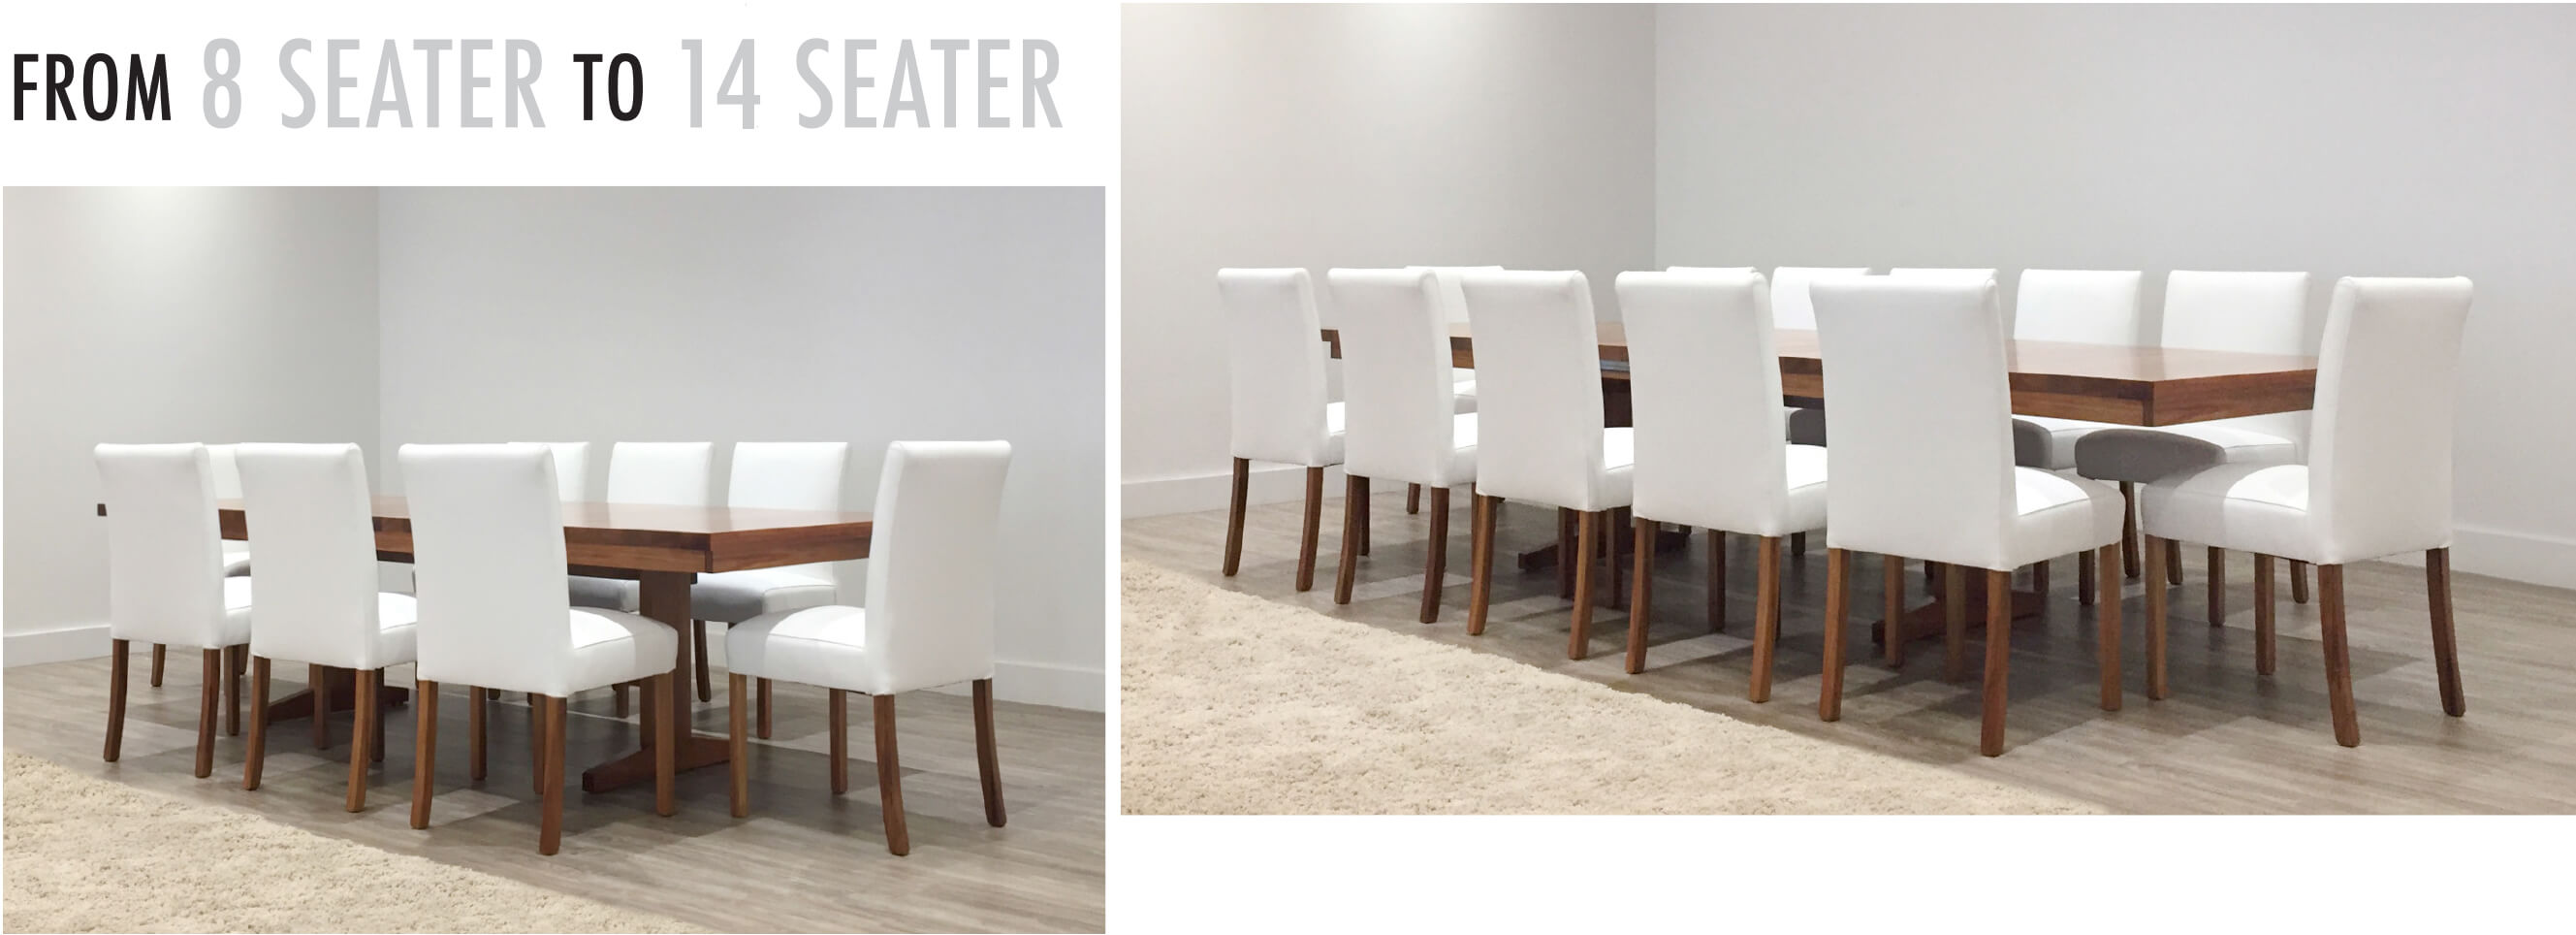 8 seater to 14 seater extendable dining table